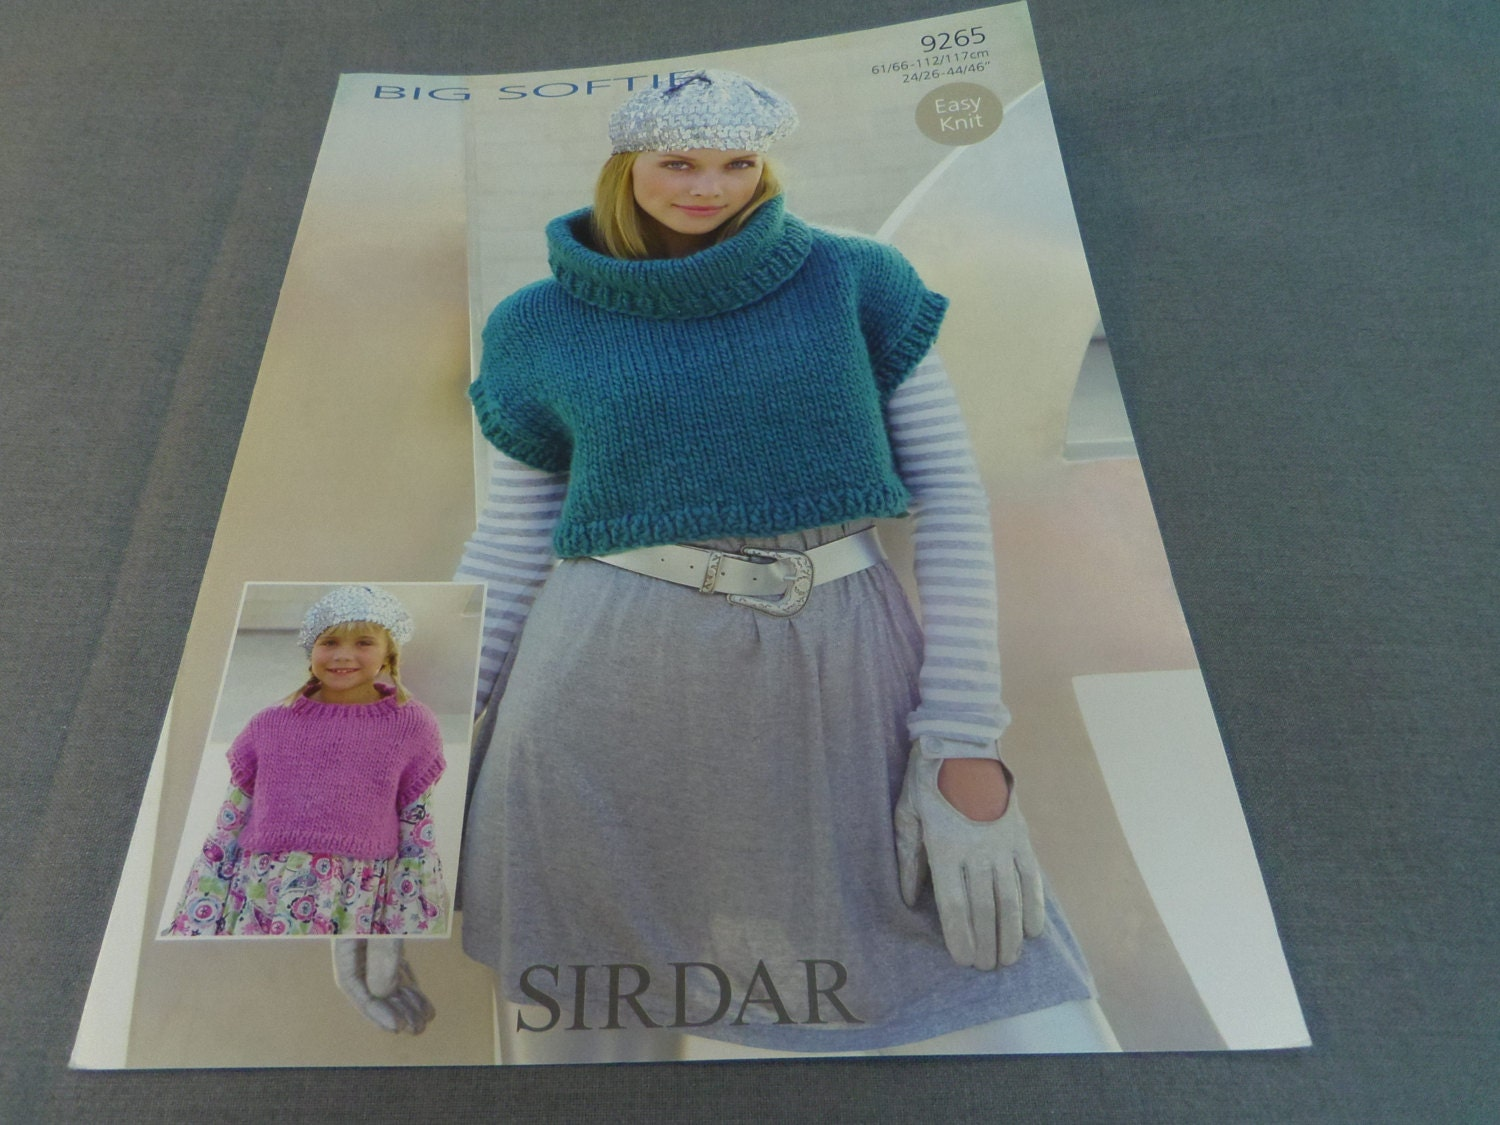 Knitting Pattern, Easy Knit Sirdar Sweater Top Childs and Adult 24 ...